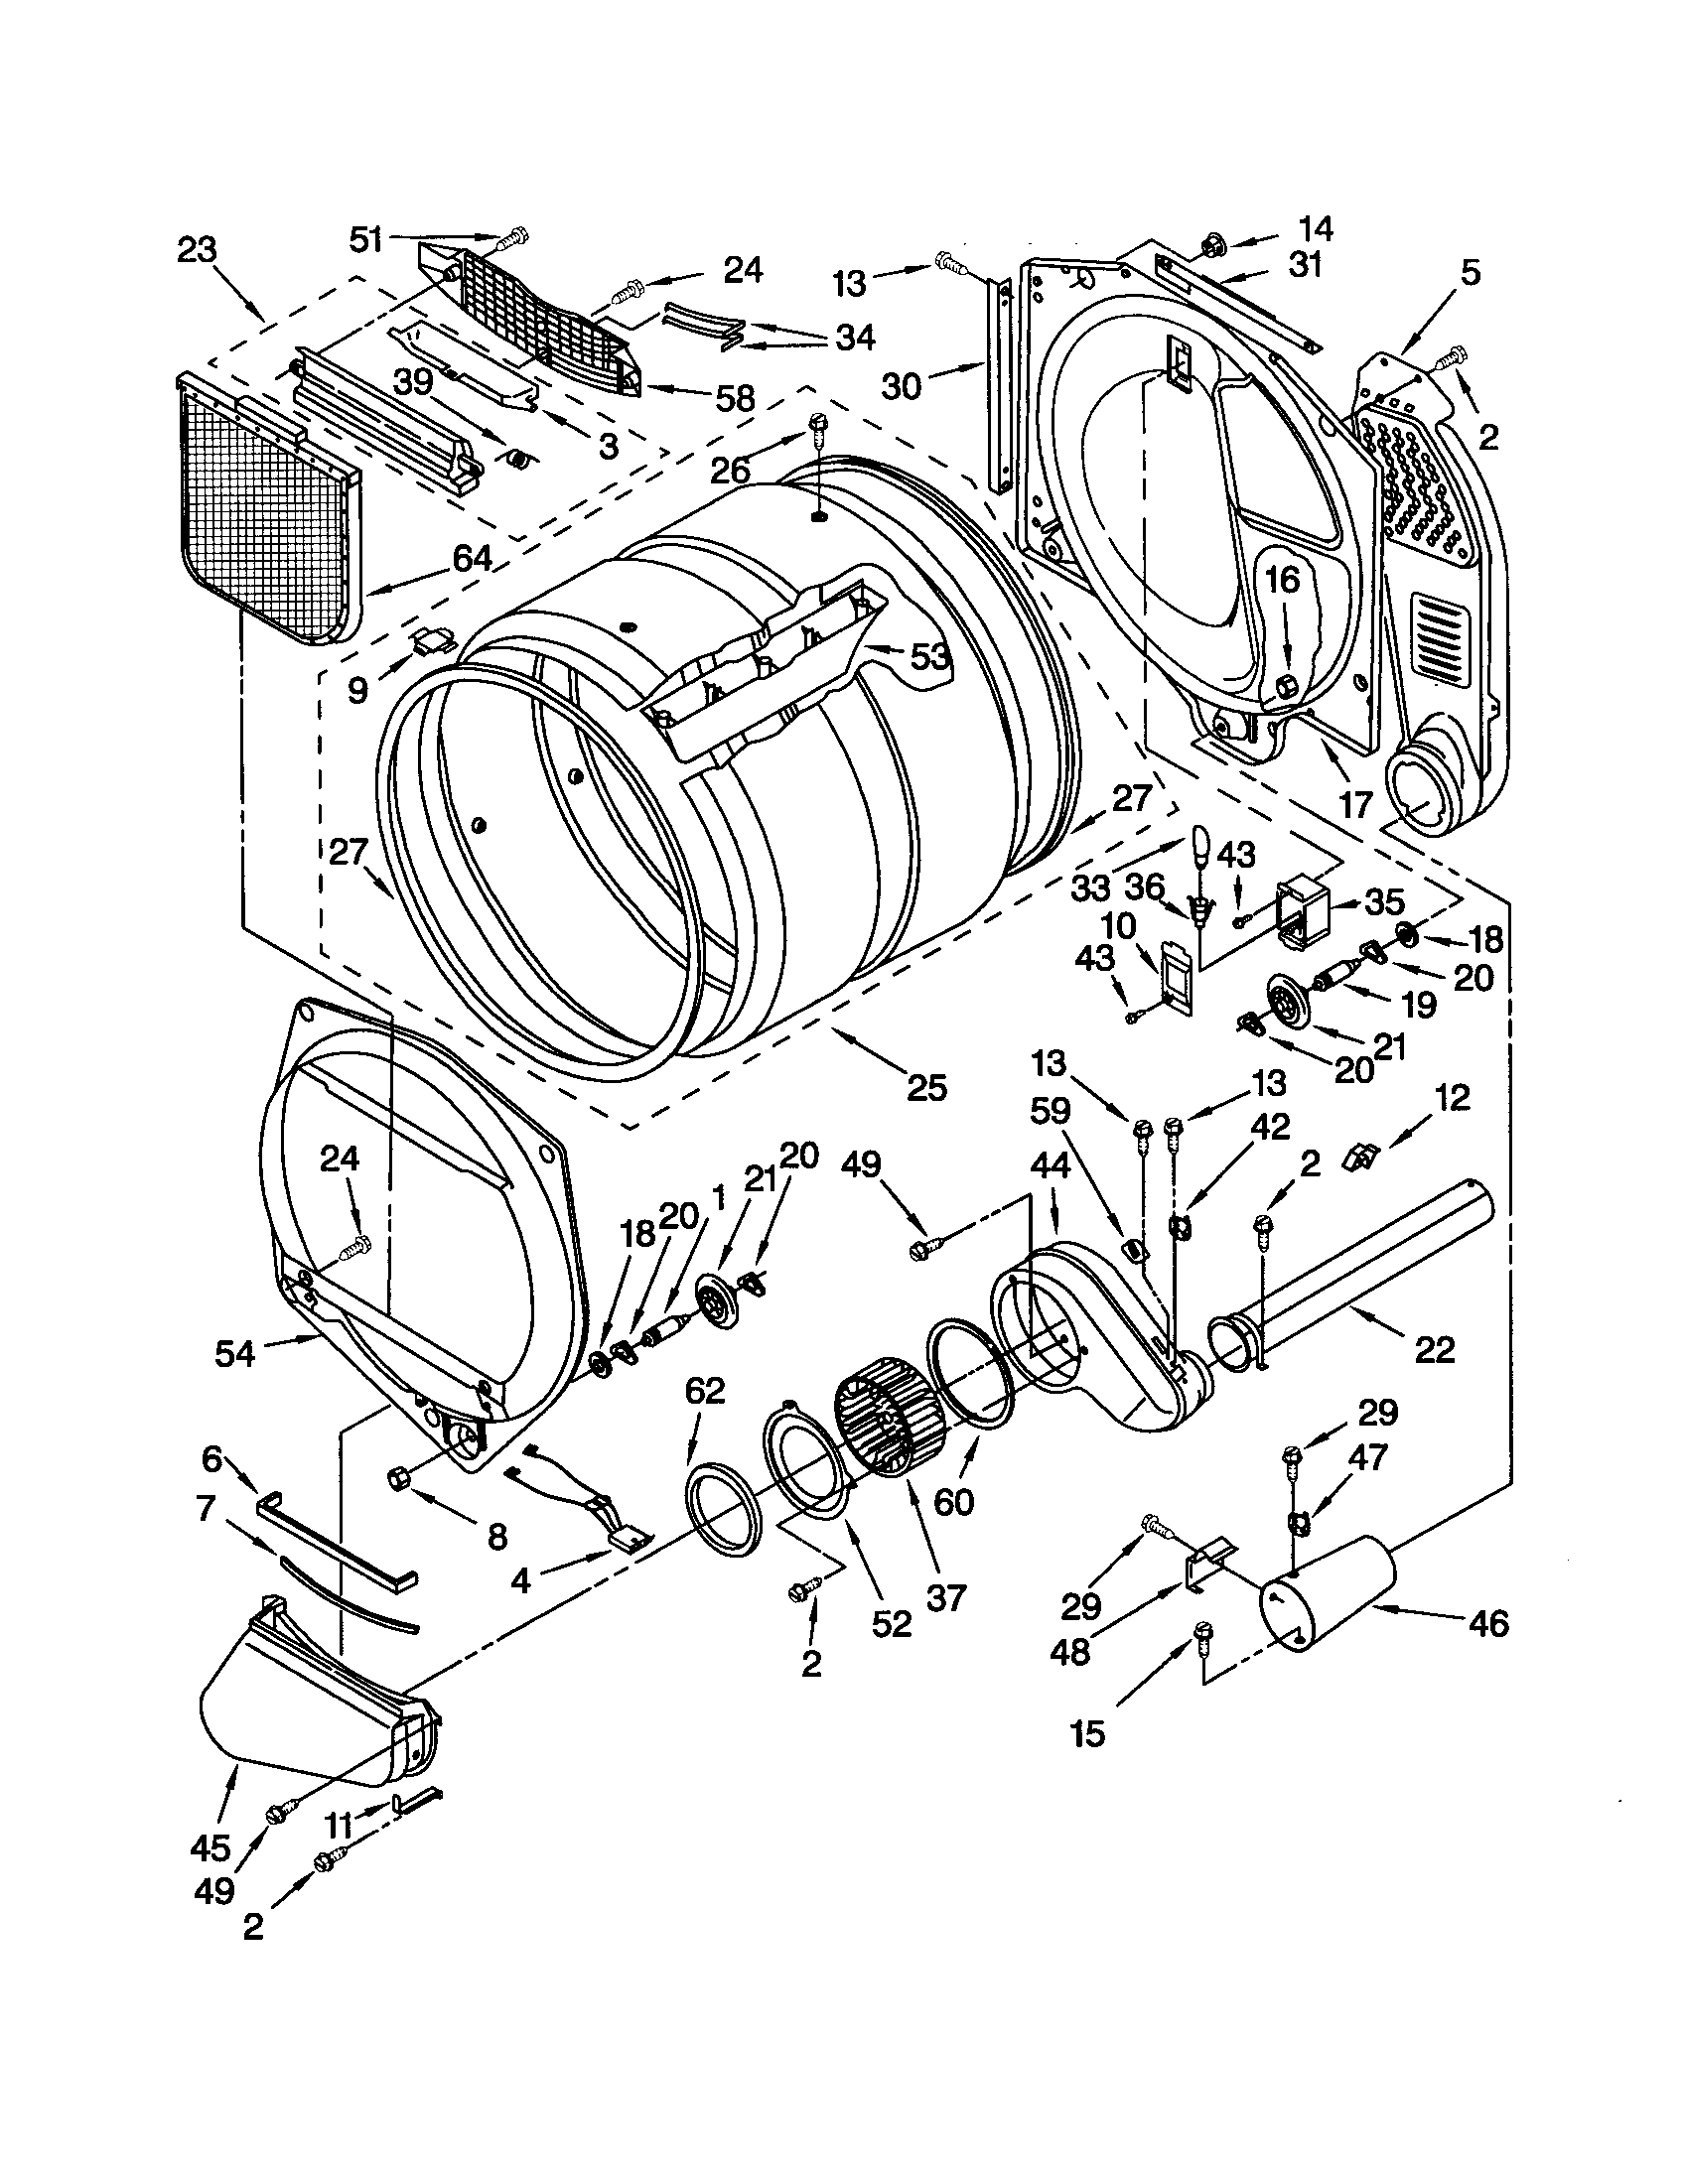 fuse location moreover whirlpool dryer belt diagram on kenmore diagram further kenmore dryer fuse location moreover whirlpool dryer [ 1696 x 2200 Pixel ]